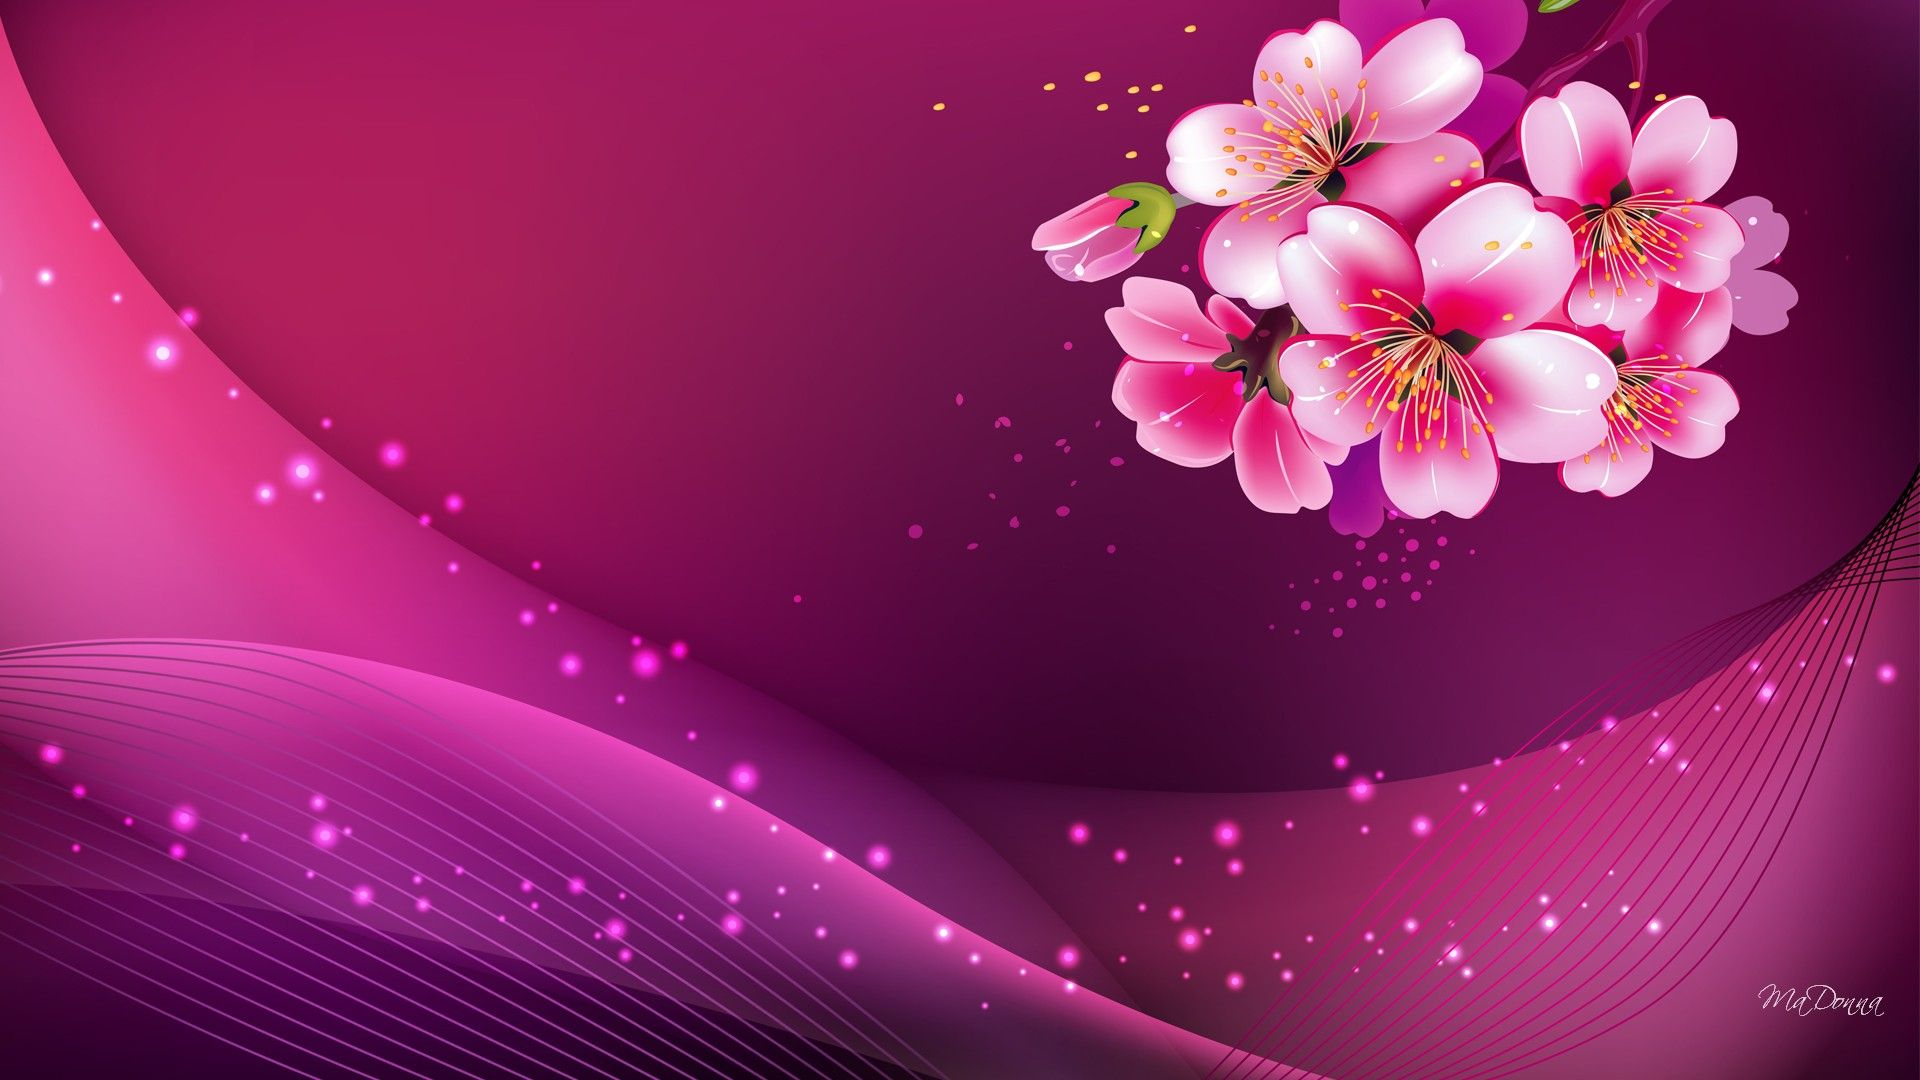 Widescreen Pink Background Hd Image Pc Colours In 2019 Pinterest